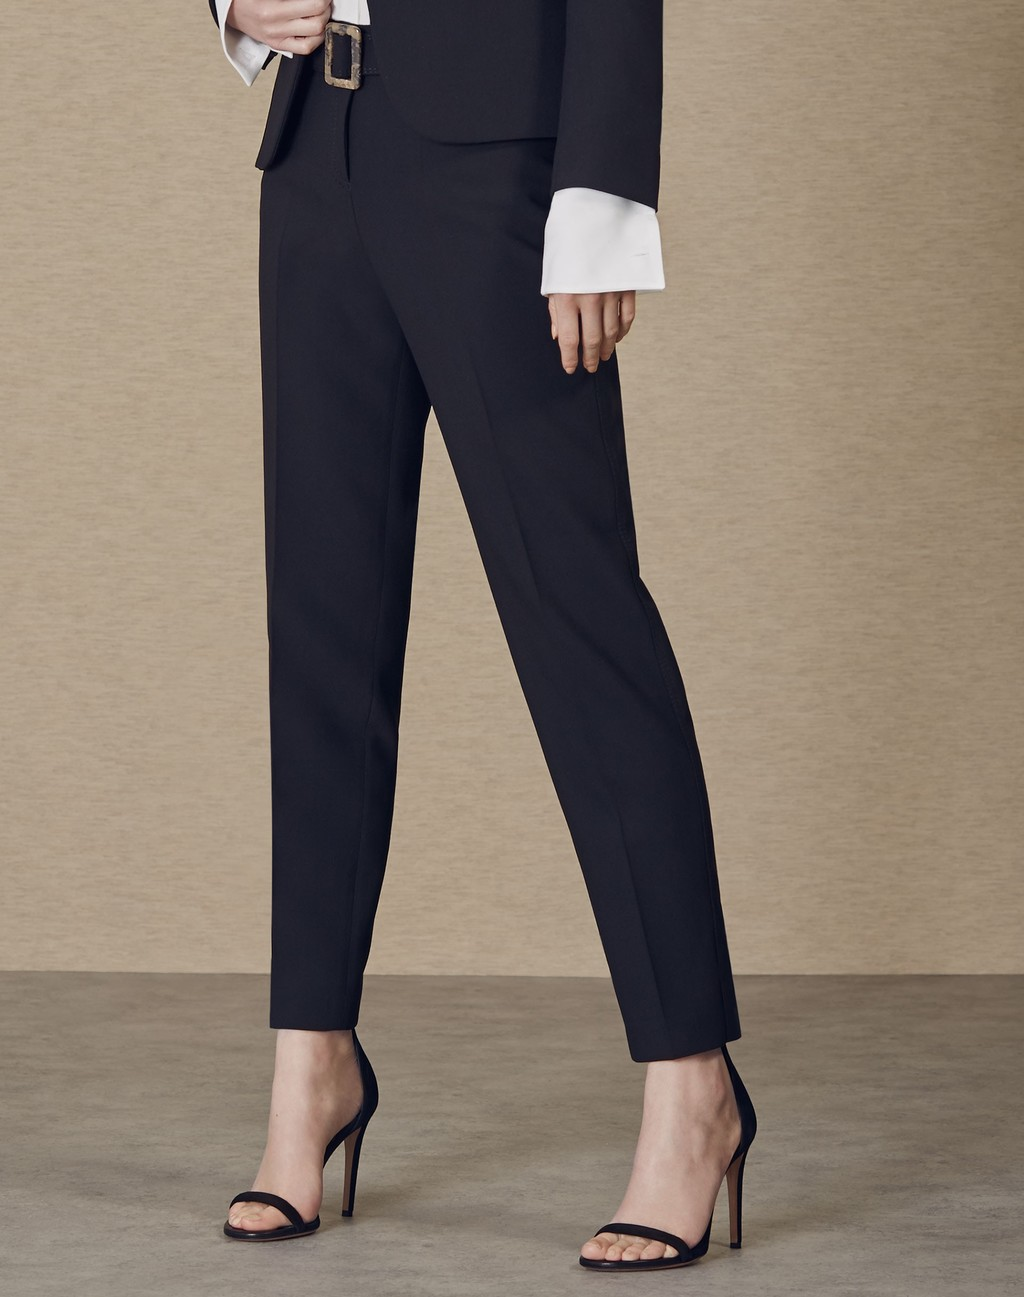 Slim Leg Belted Trouser Black - pattern: plain; waist: mid/regular rise; predominant colour: navy; occasions: work; length: ankle length; fibres: polyester/polyamide - 100%; texture group: crepes; fit: slim leg; pattern type: fabric; style: standard; season: a/w 2015; wardrobe: basic